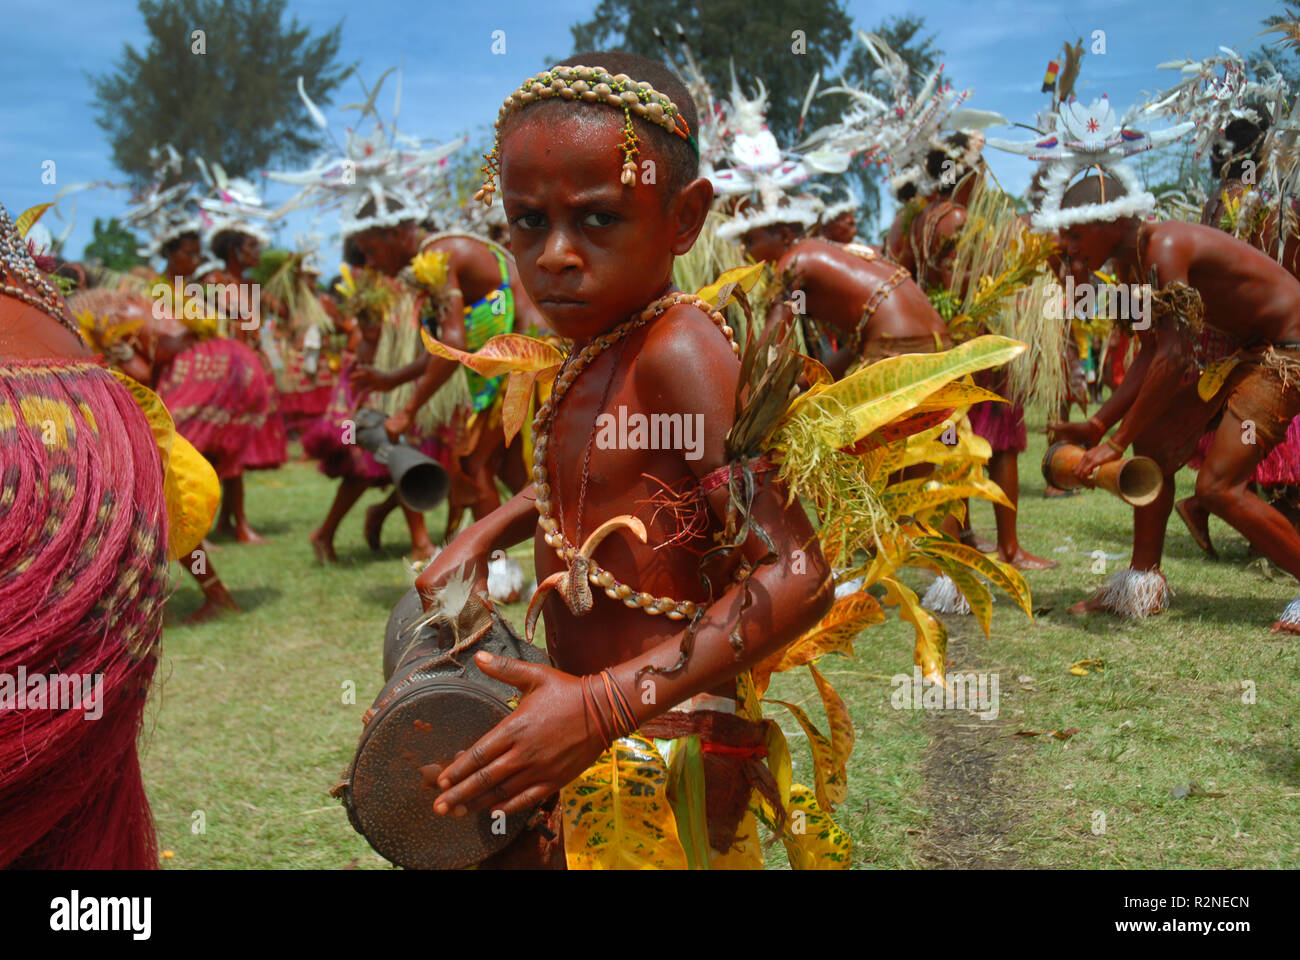 Dancers performing a traditional dance as part of a Sing Sing in Madang, Papua New Guinea. - Stock Image